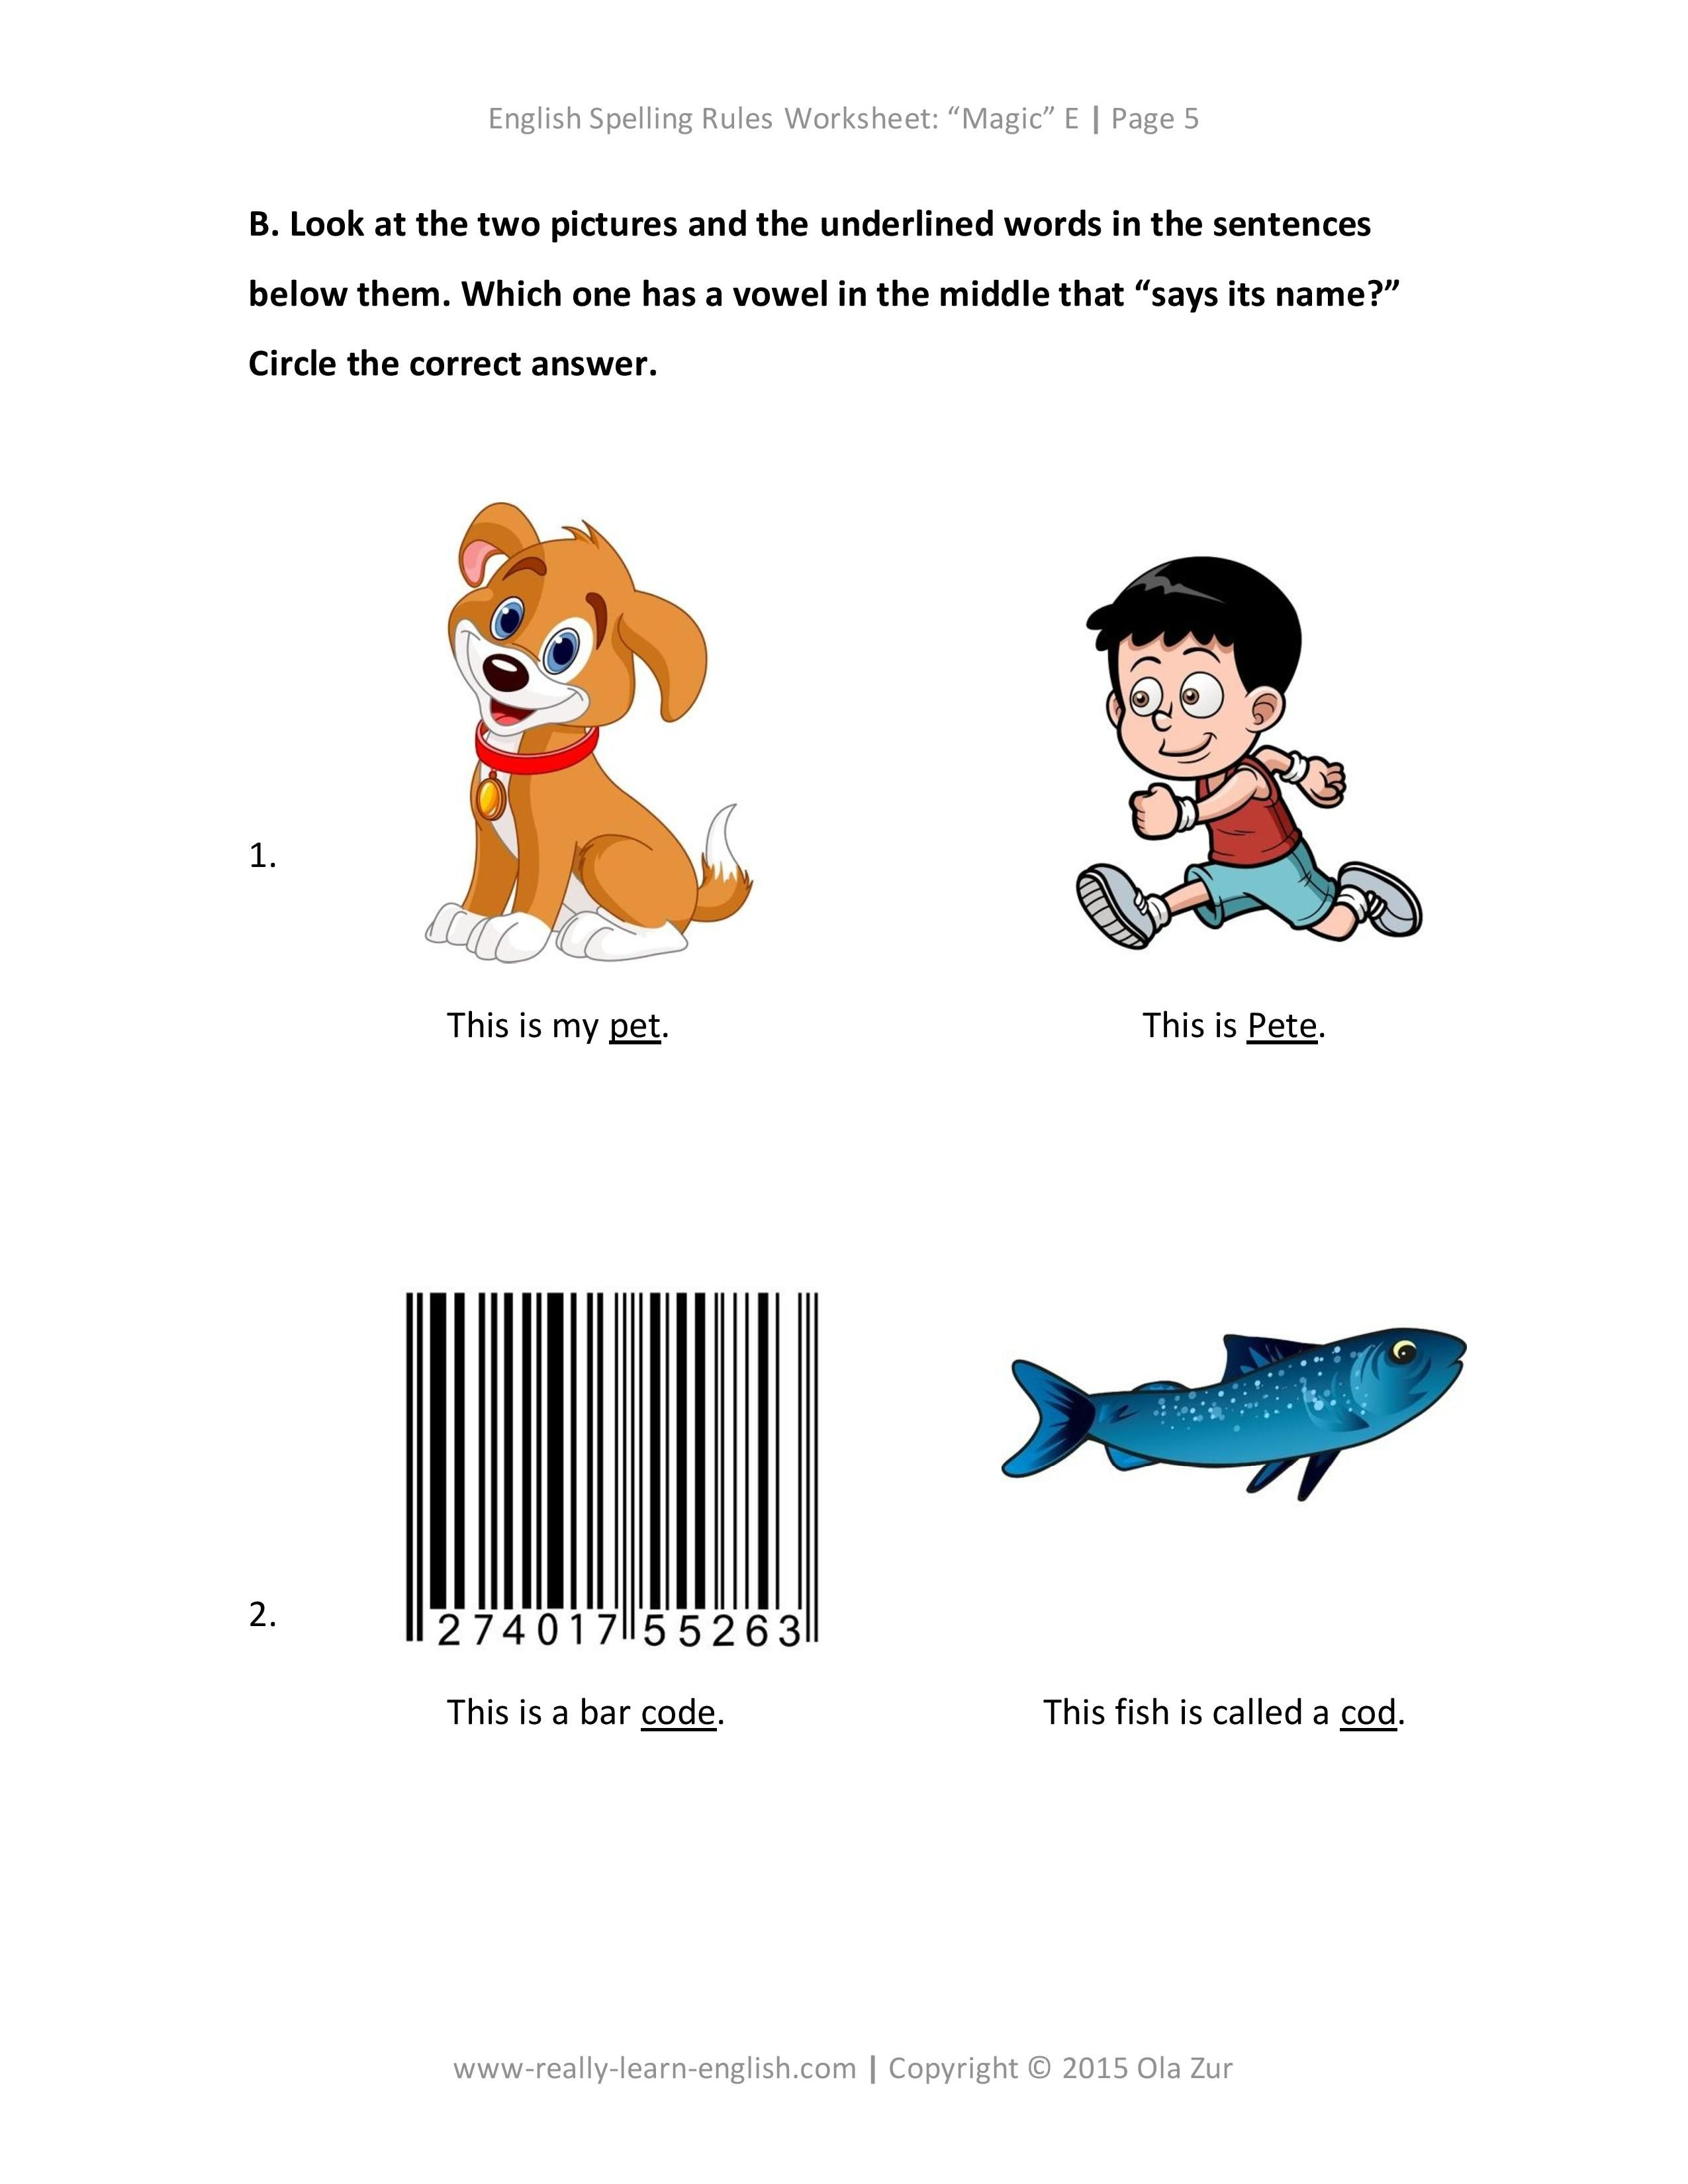 The Complete List Of English Spelling Rules Lesson 1 The Magic E Rules Examples Worksheet And Answer Key English Spelling Rules English Spelling Spelling Rules